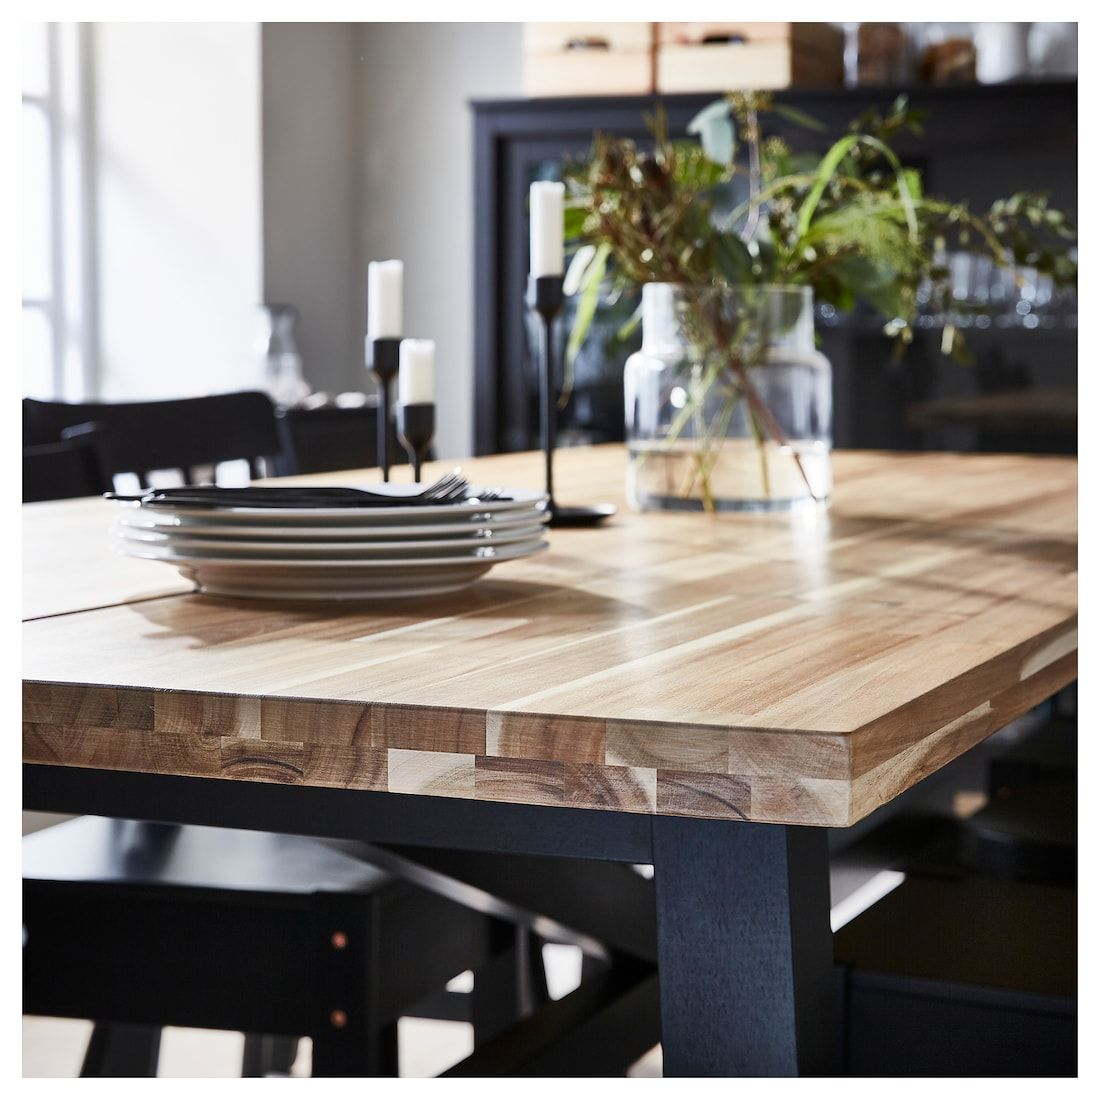 Http Www Texastreads Com Wp Content Uploads 2013 09 Solid Walnut Butcher Block Coff Japanese Dining Table Butcher Block Dining Table Black Glass Coffee Table